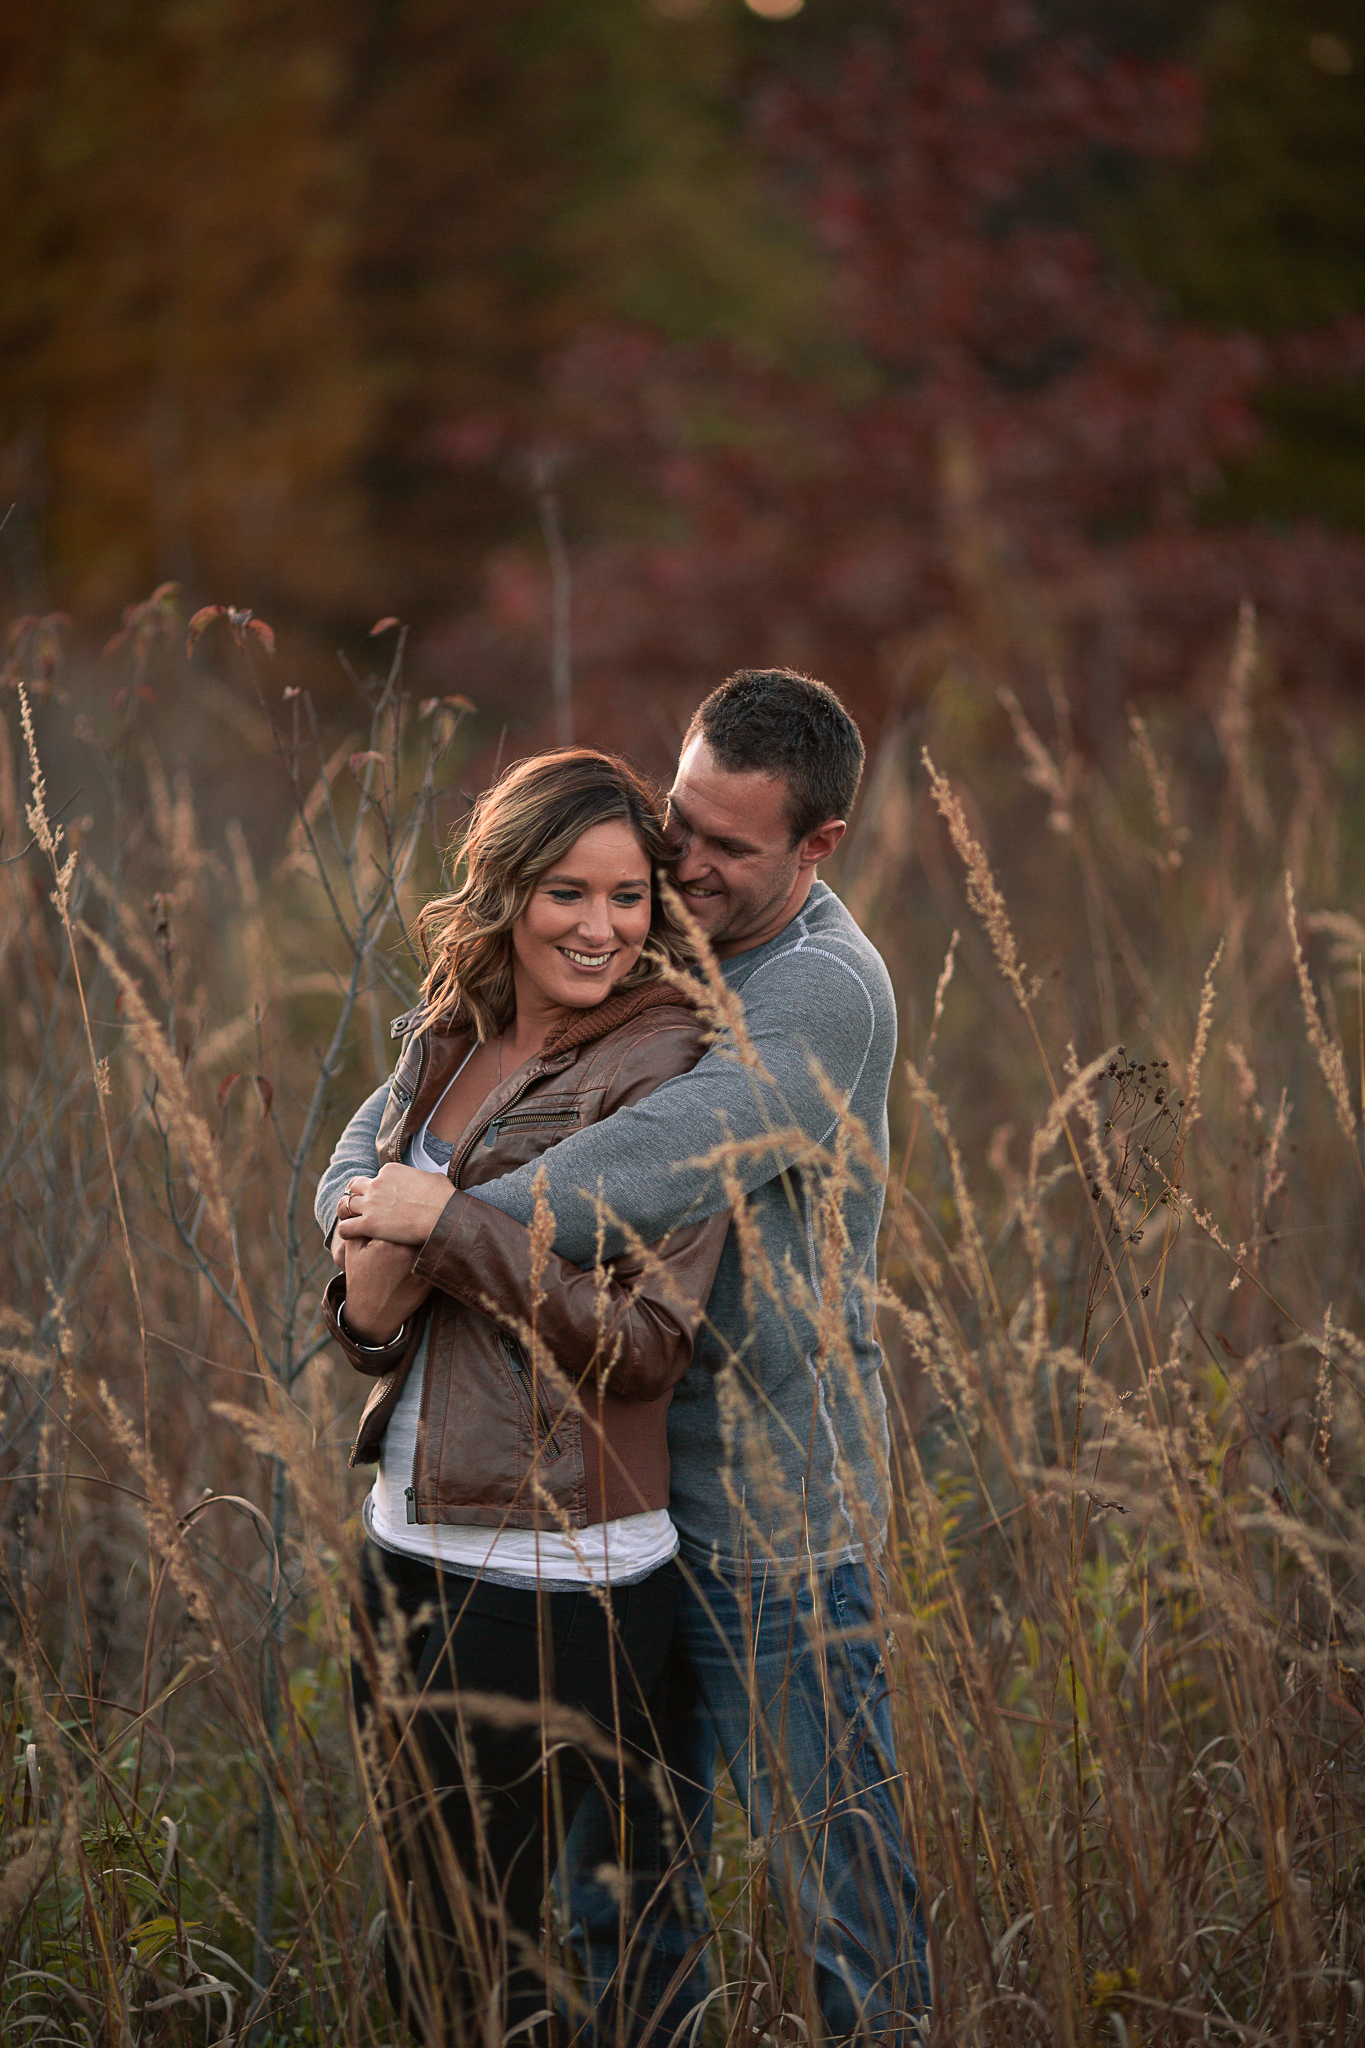 engagement session outdoors hugging each other